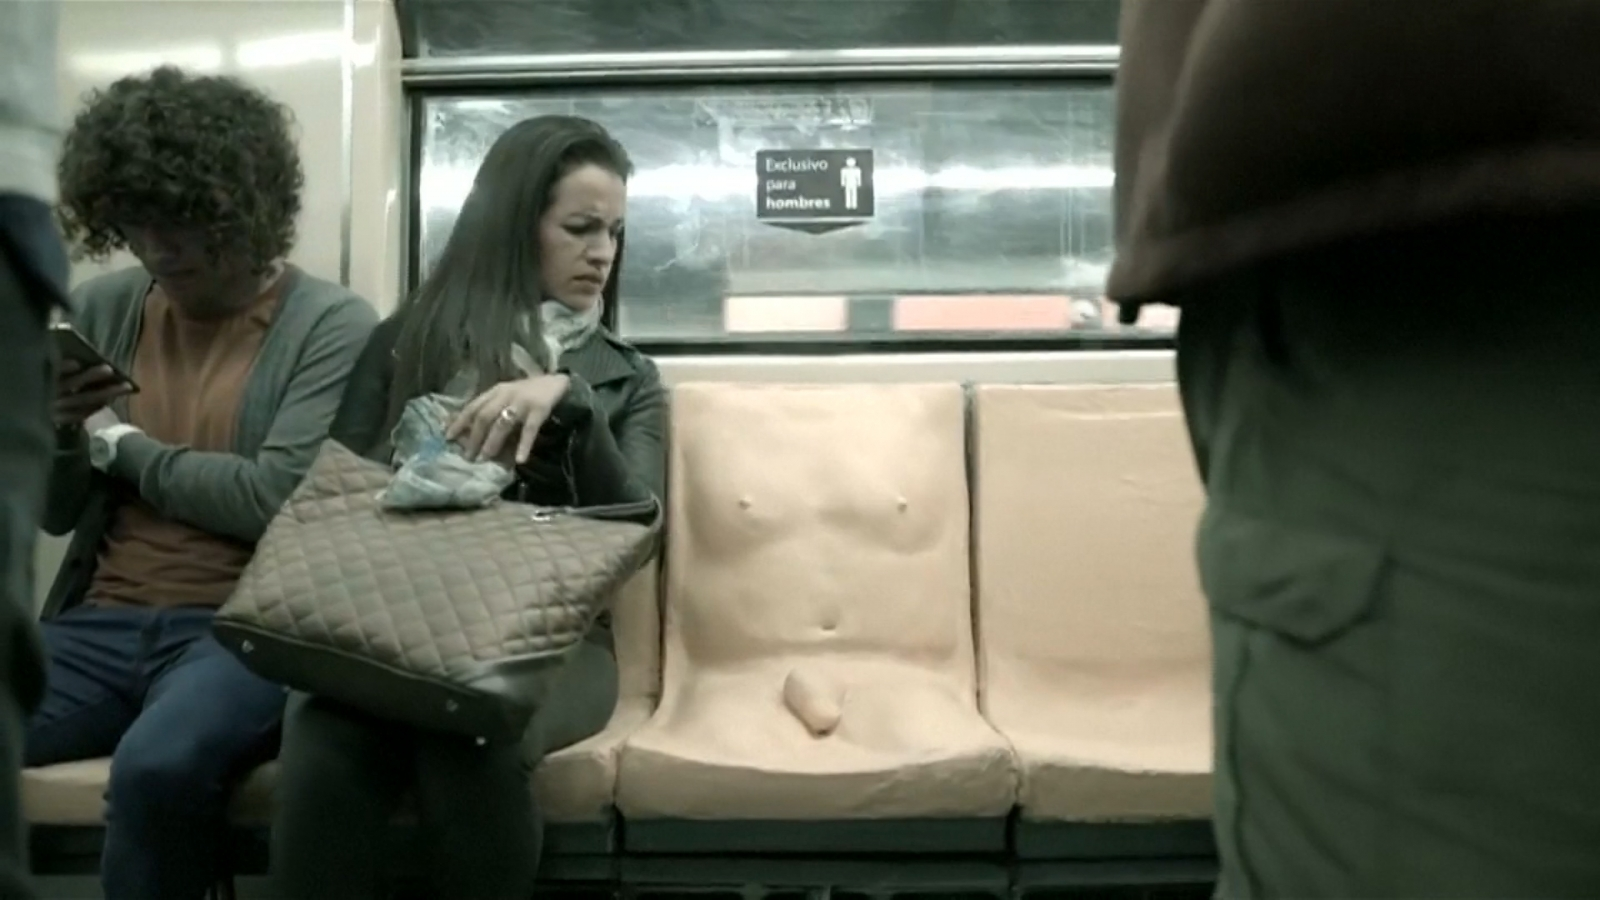 Penis seat on train challenges sexual harassment on public transport